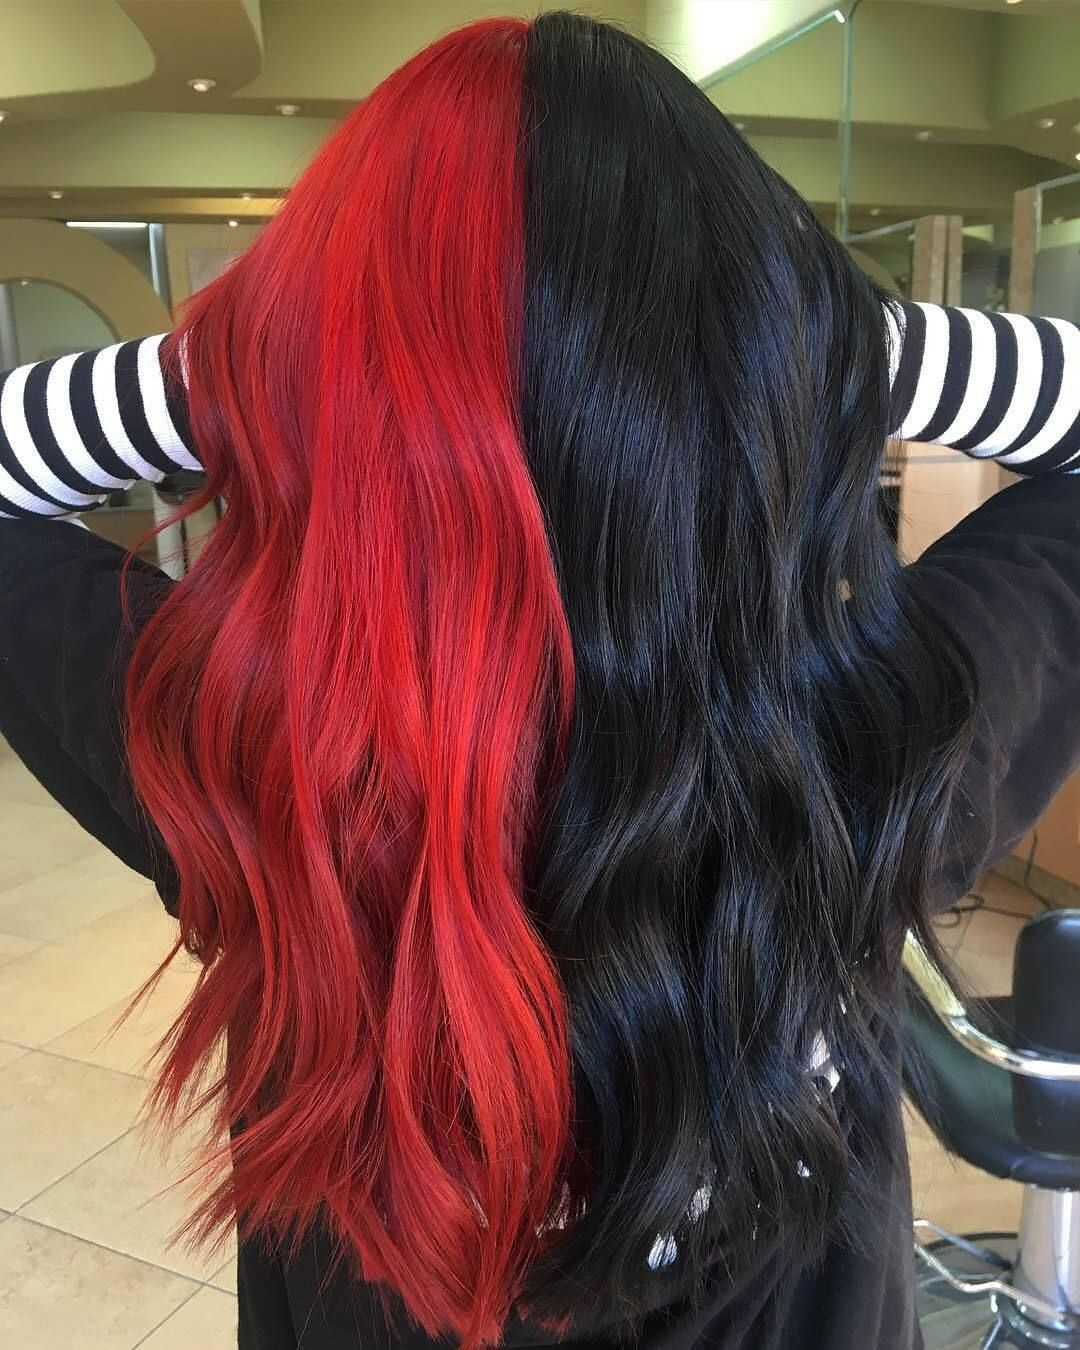 10 Popular Red And Black Hair Colour Combinations in 2020 ...